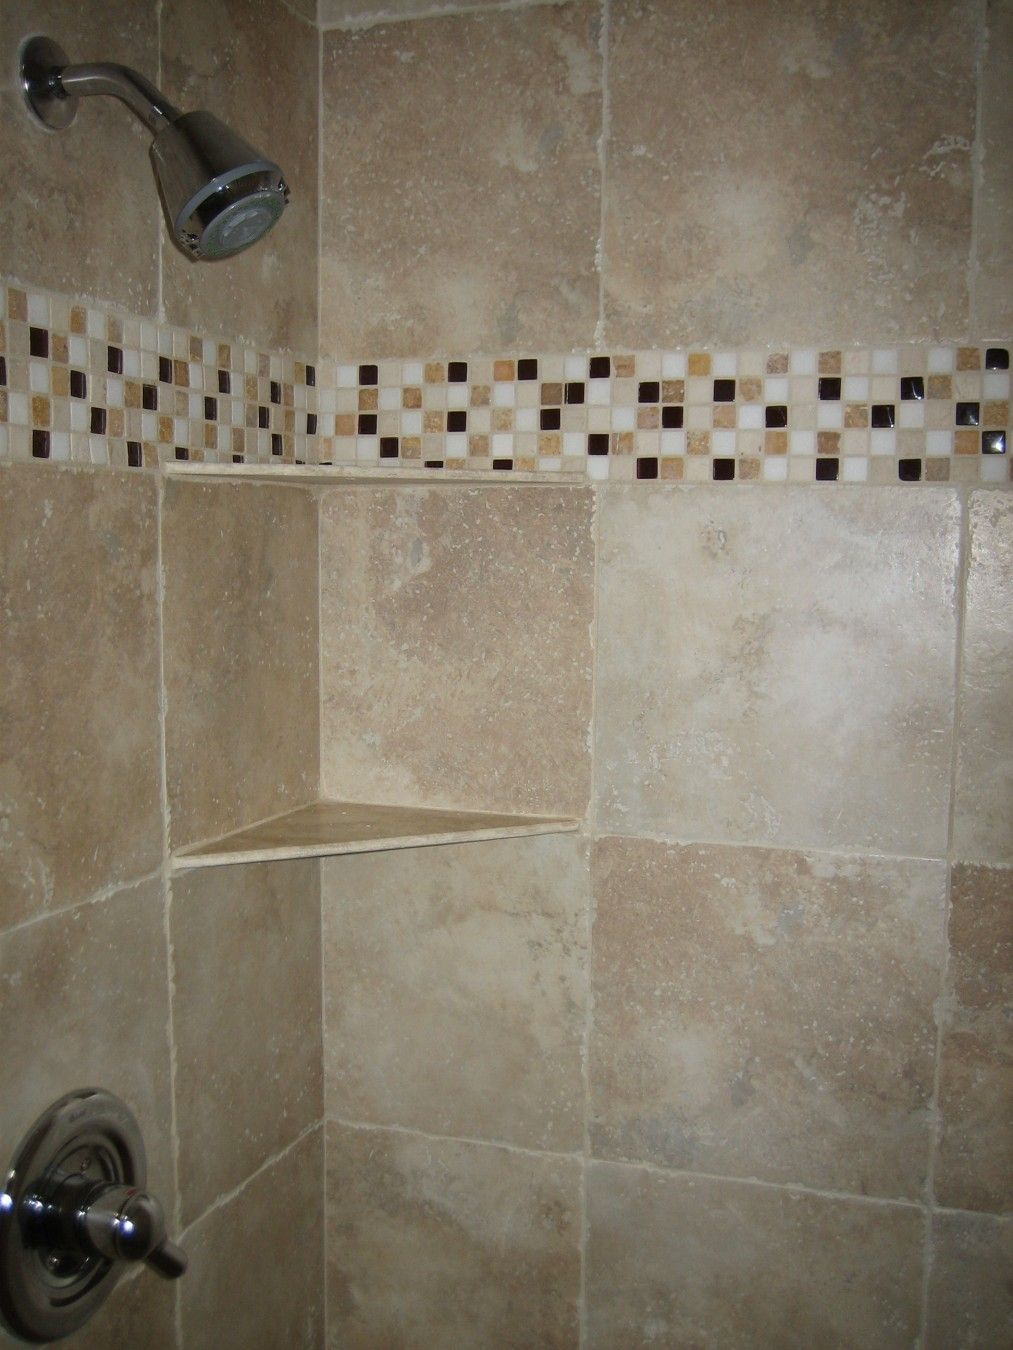 Bahtroom A Shower Space With Light Brown Tiles For Walls Garnished With Home Depot Bathroom Tile Designs